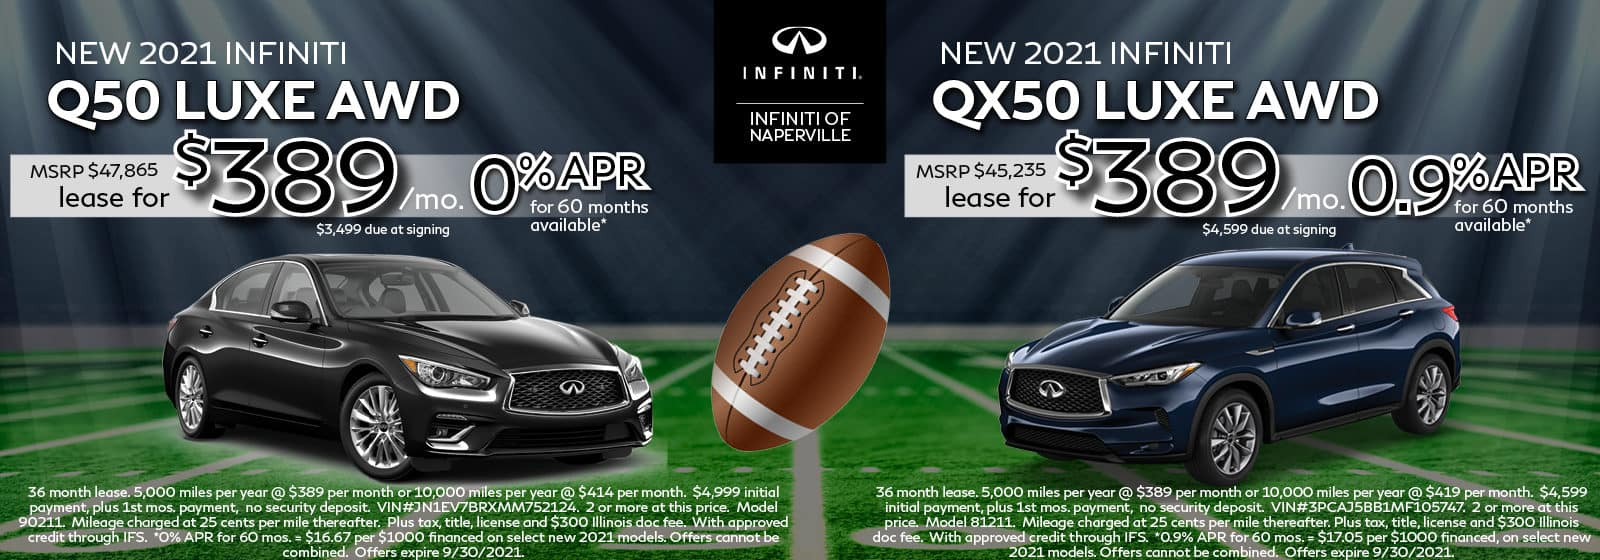 2021 INFINITI Q50 and QX50 Lease Offers | INFINITI of Naperville